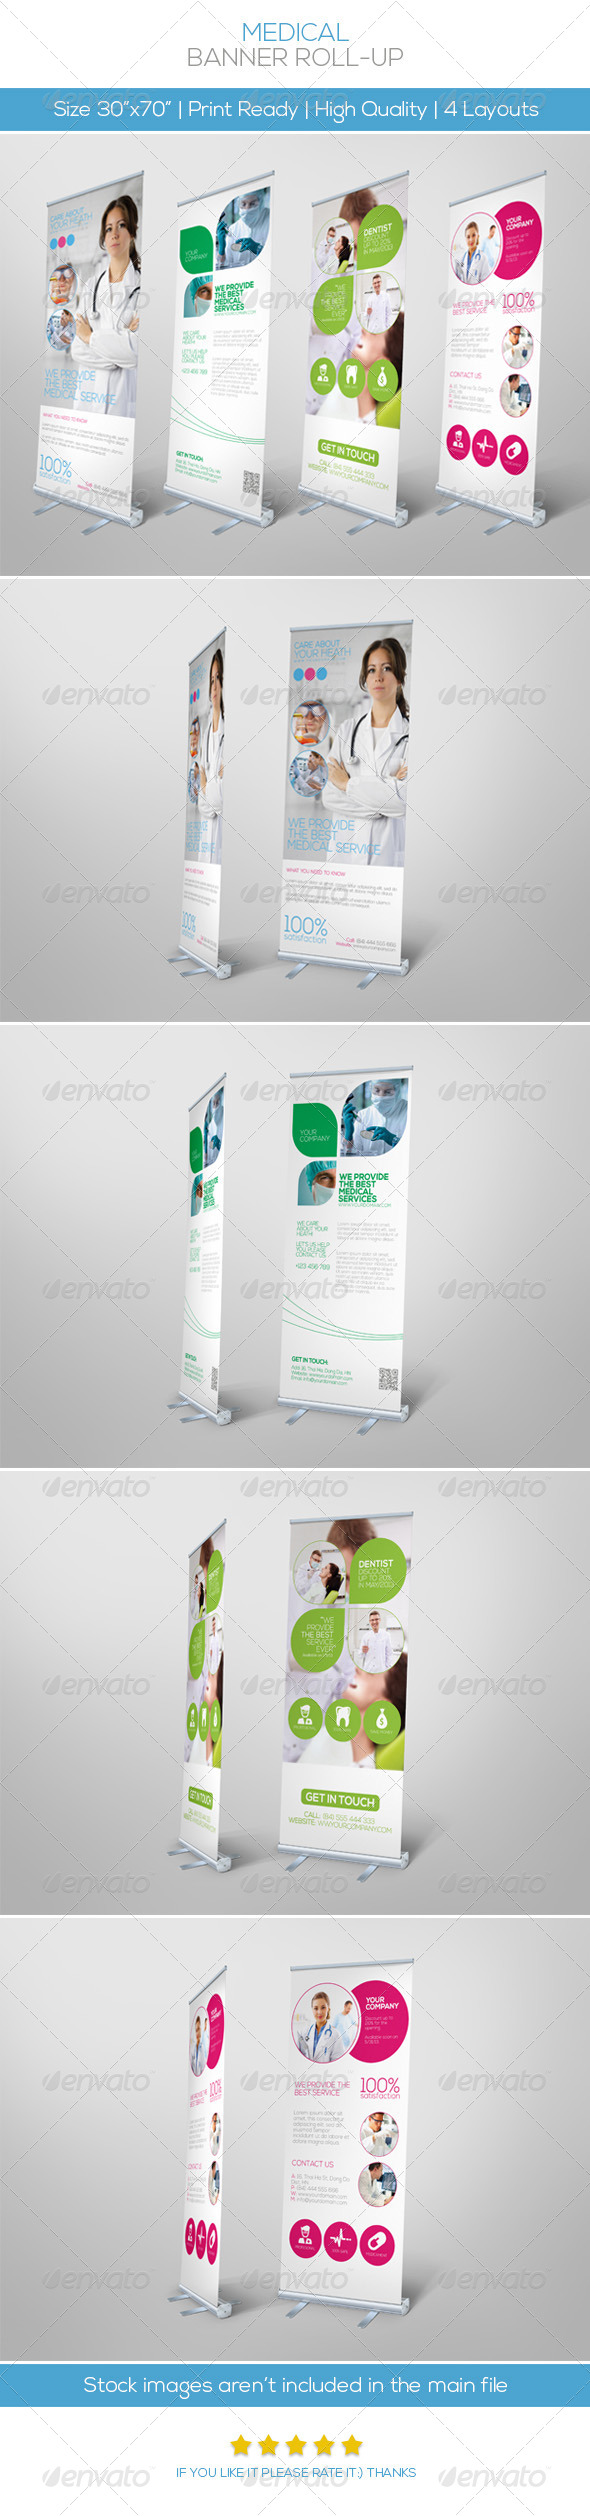 Premium Medical Roll-up Banner - Signage Print Templates